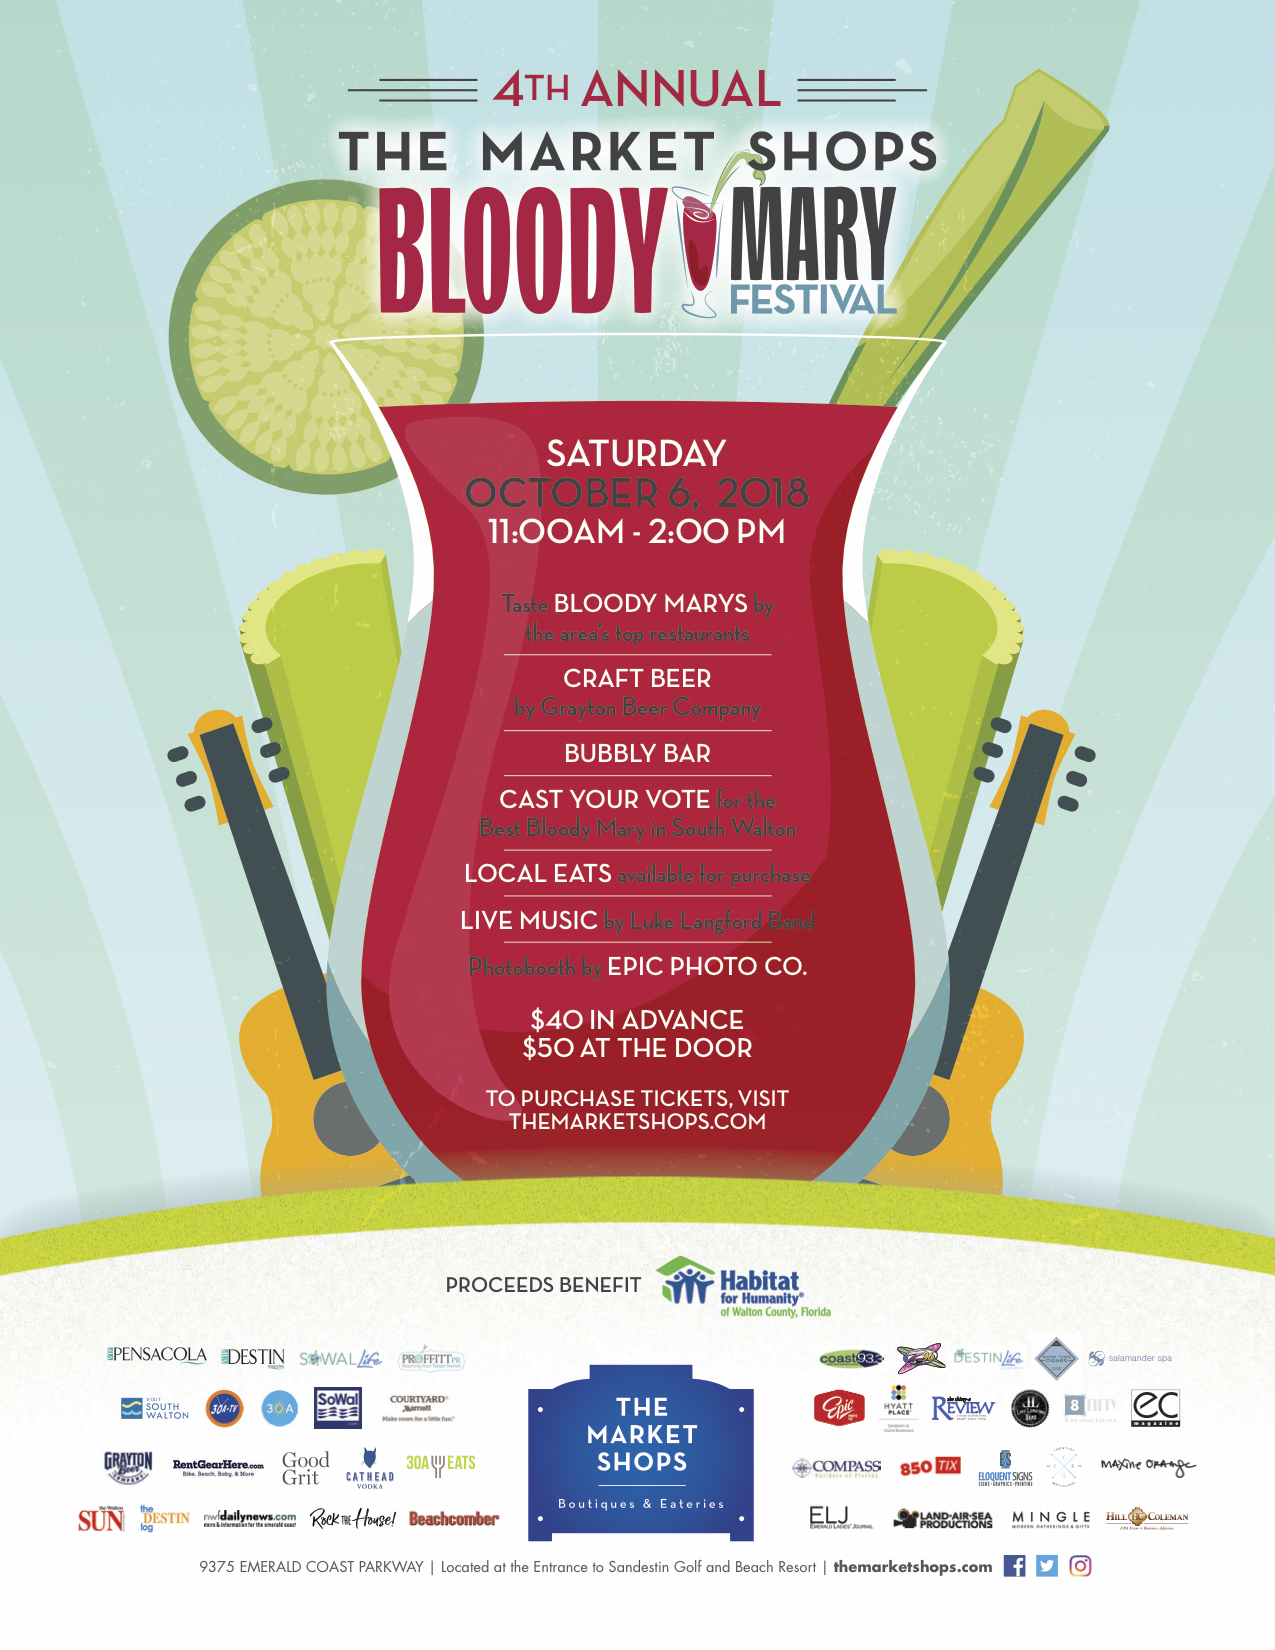 4thAnnual Bloody Mary Festival